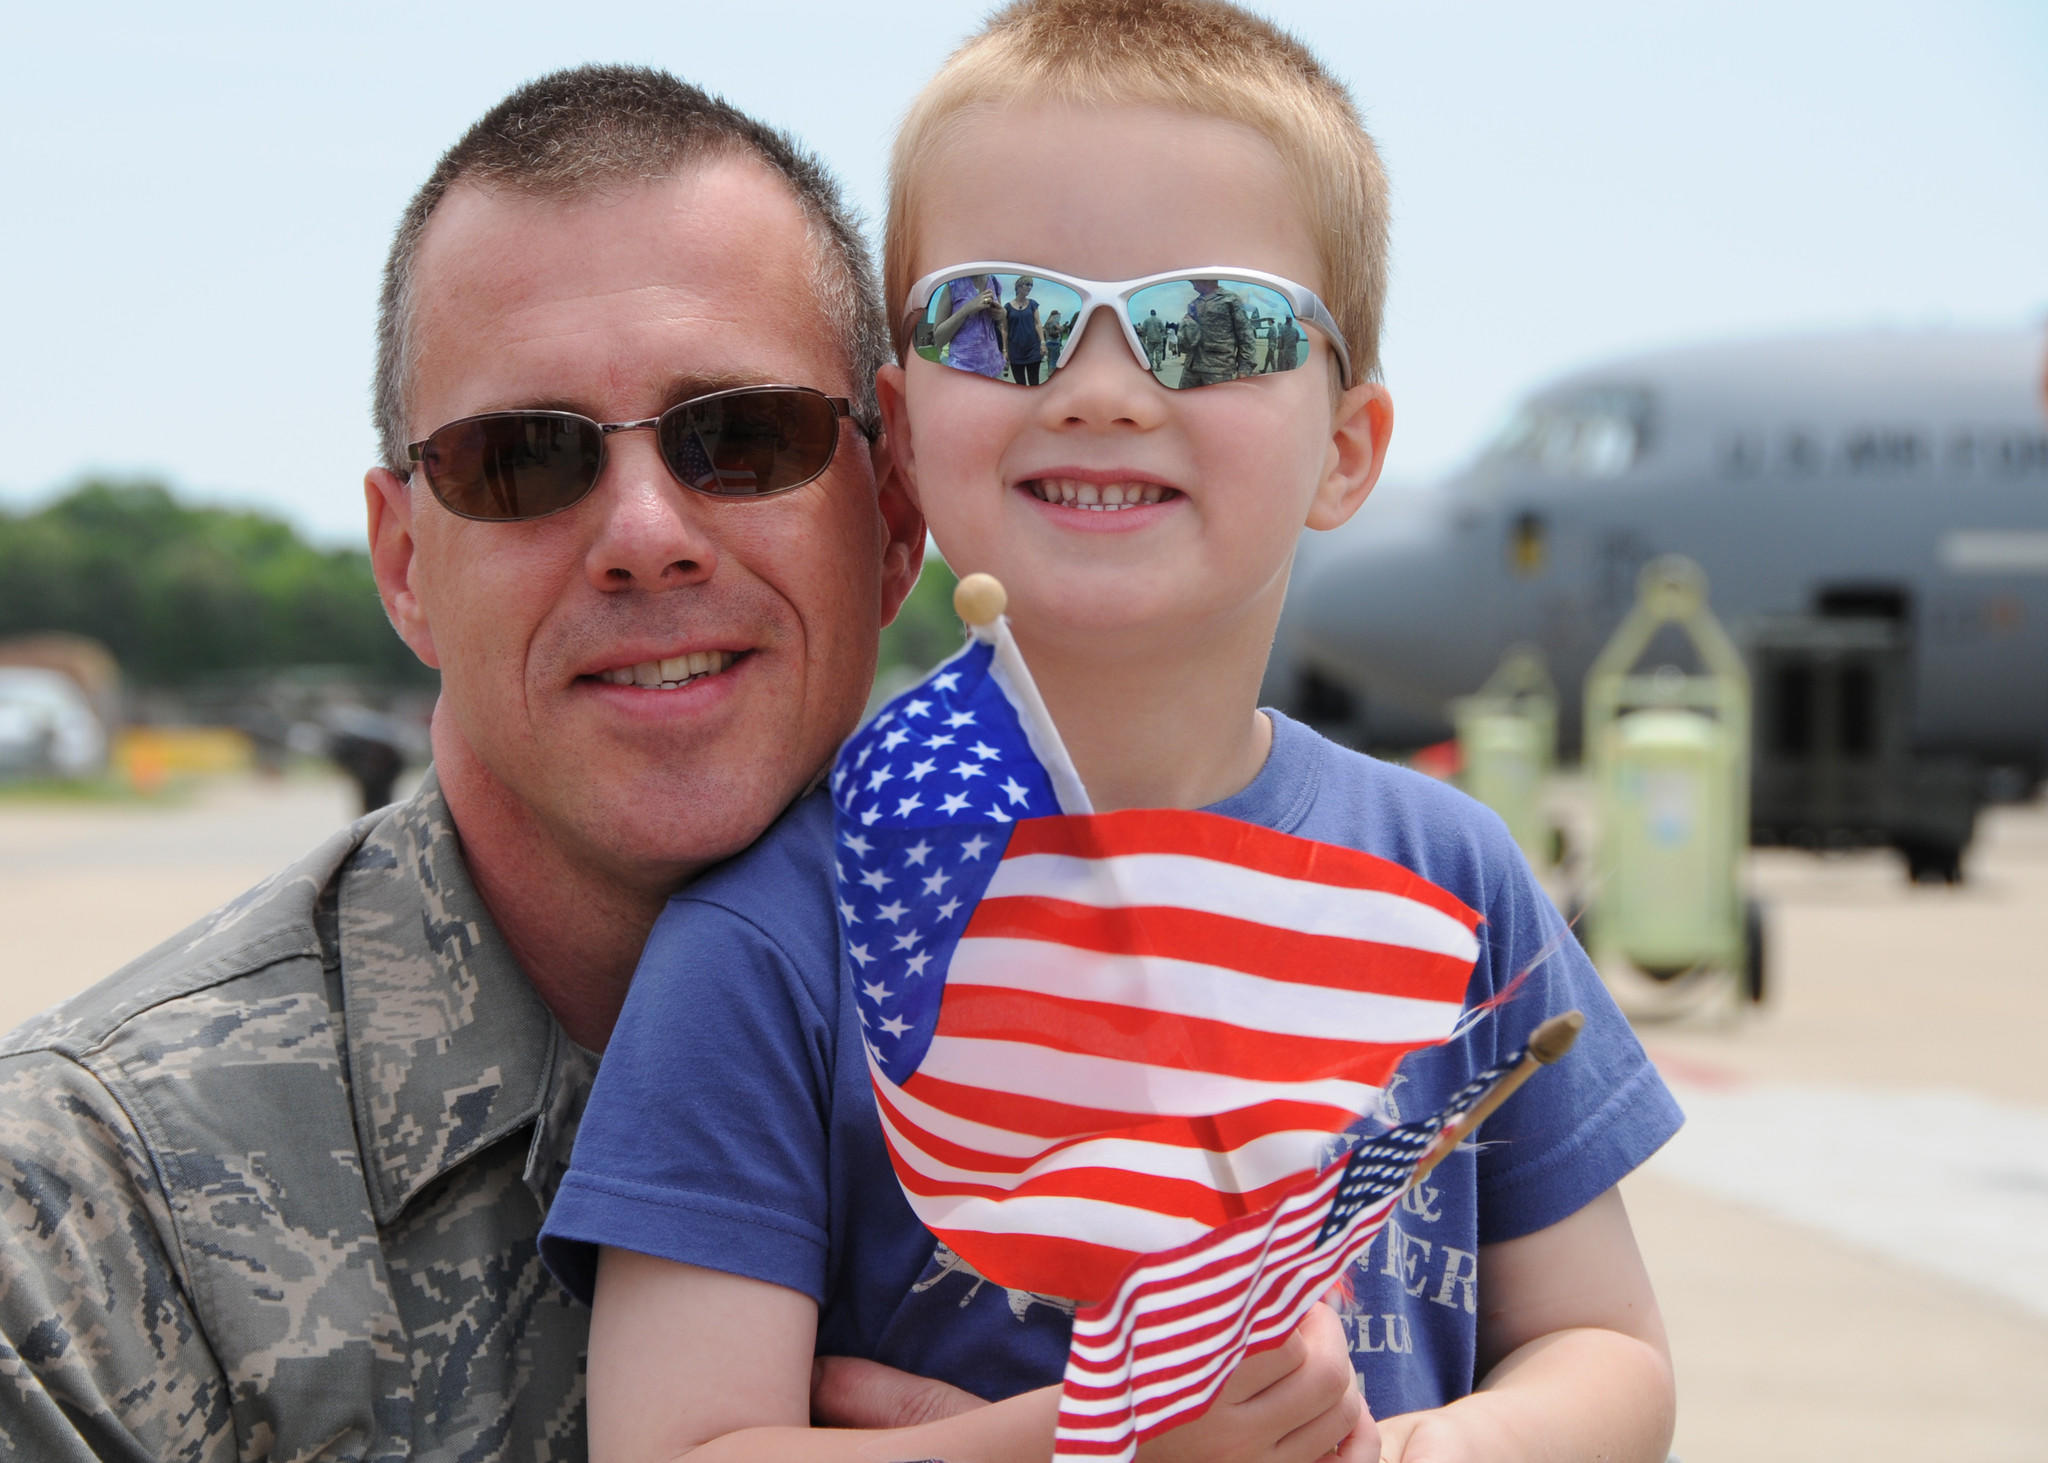 U.S. Air Force Tech Sgt. John Jones of the Maryland Air National Guard's 135th Maintenance Squadron, hugs his son, Nathan on the flight line on Warfield Air National Guard Base, Baltimore, Md., May 15, 2010. Sgt. Jones, a C-130 maintainer, and the 135th supported forces fighting in Afghanistan through transport supplies and cargo.